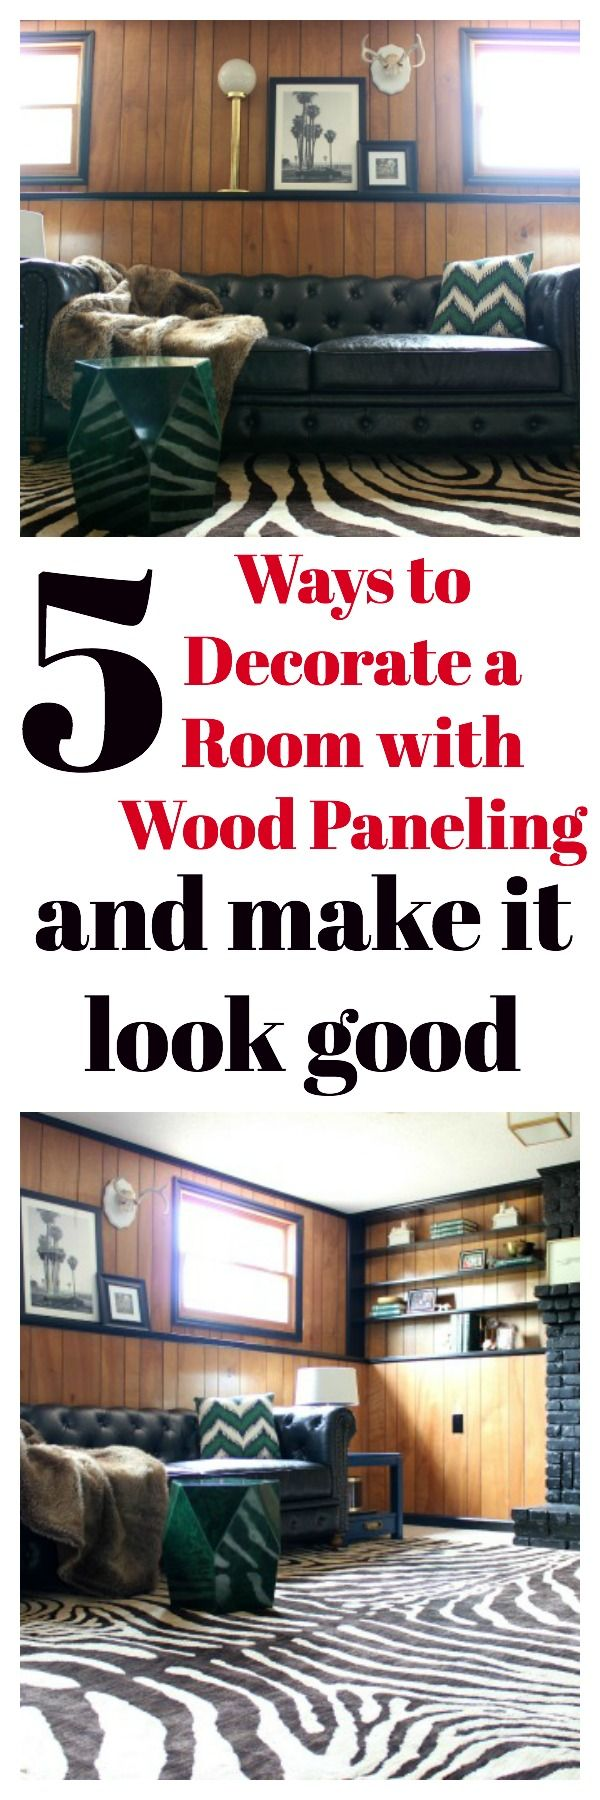 Living Room Wood Paneling Makeover: How To Make Wood Paneling Look Modern Without Painting It